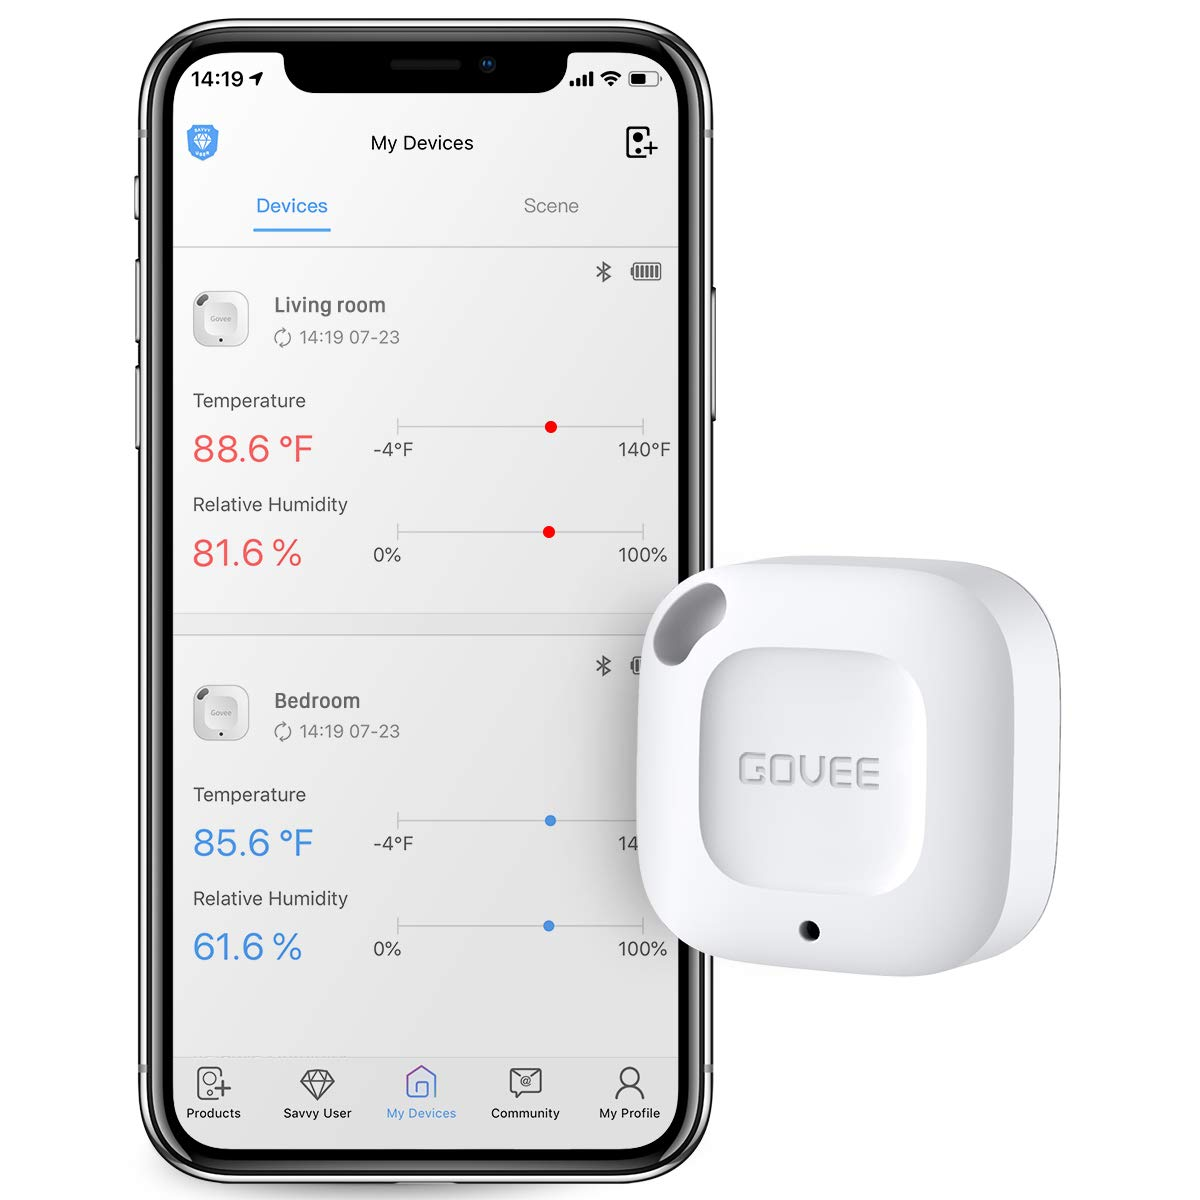 Govee Bluetooth Thermometer&Hygrometer, Mini Accurate Humidity and Temperature Sensor with Data Storage Export for iOS/Android, Temp Humidity Monitor with Alert for House Wine Living Room Baby Room